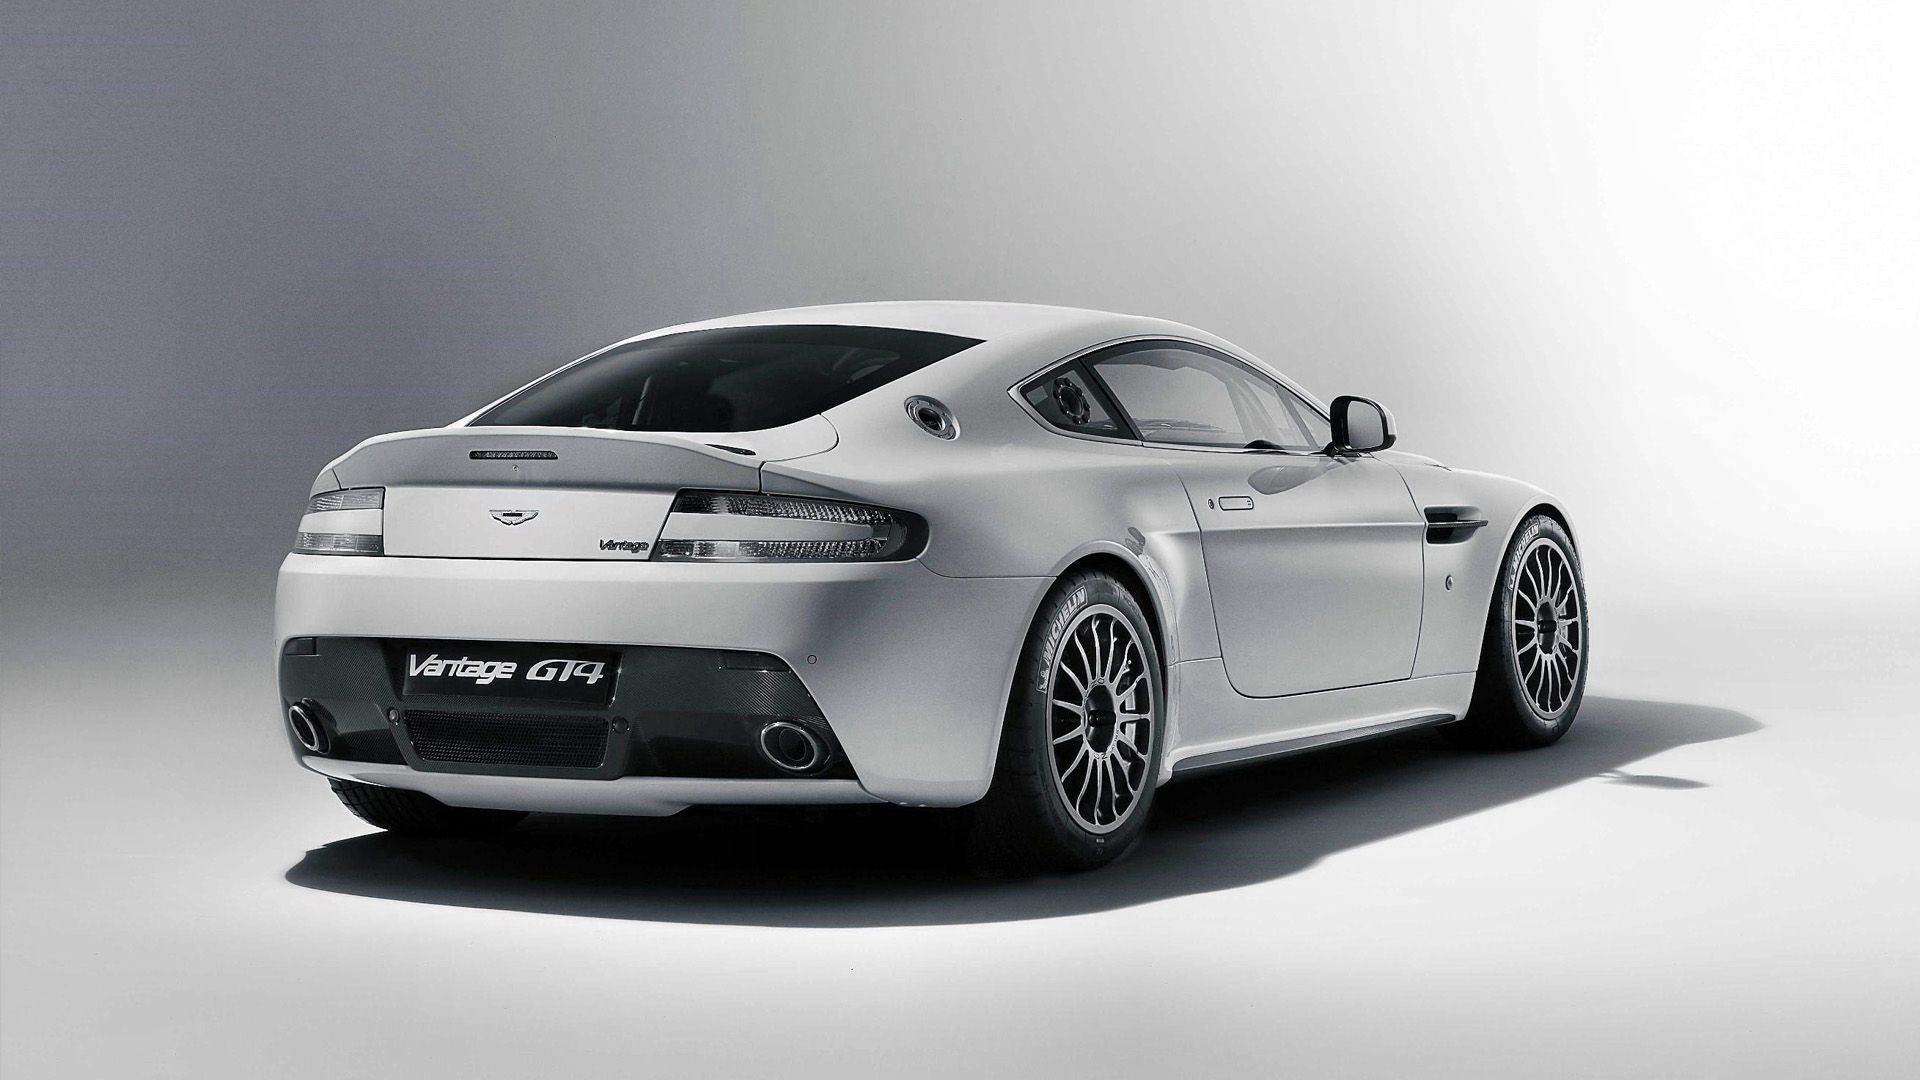 Beau Aston Martin Vanquish Wallpaper Free IPhone Wallpapers